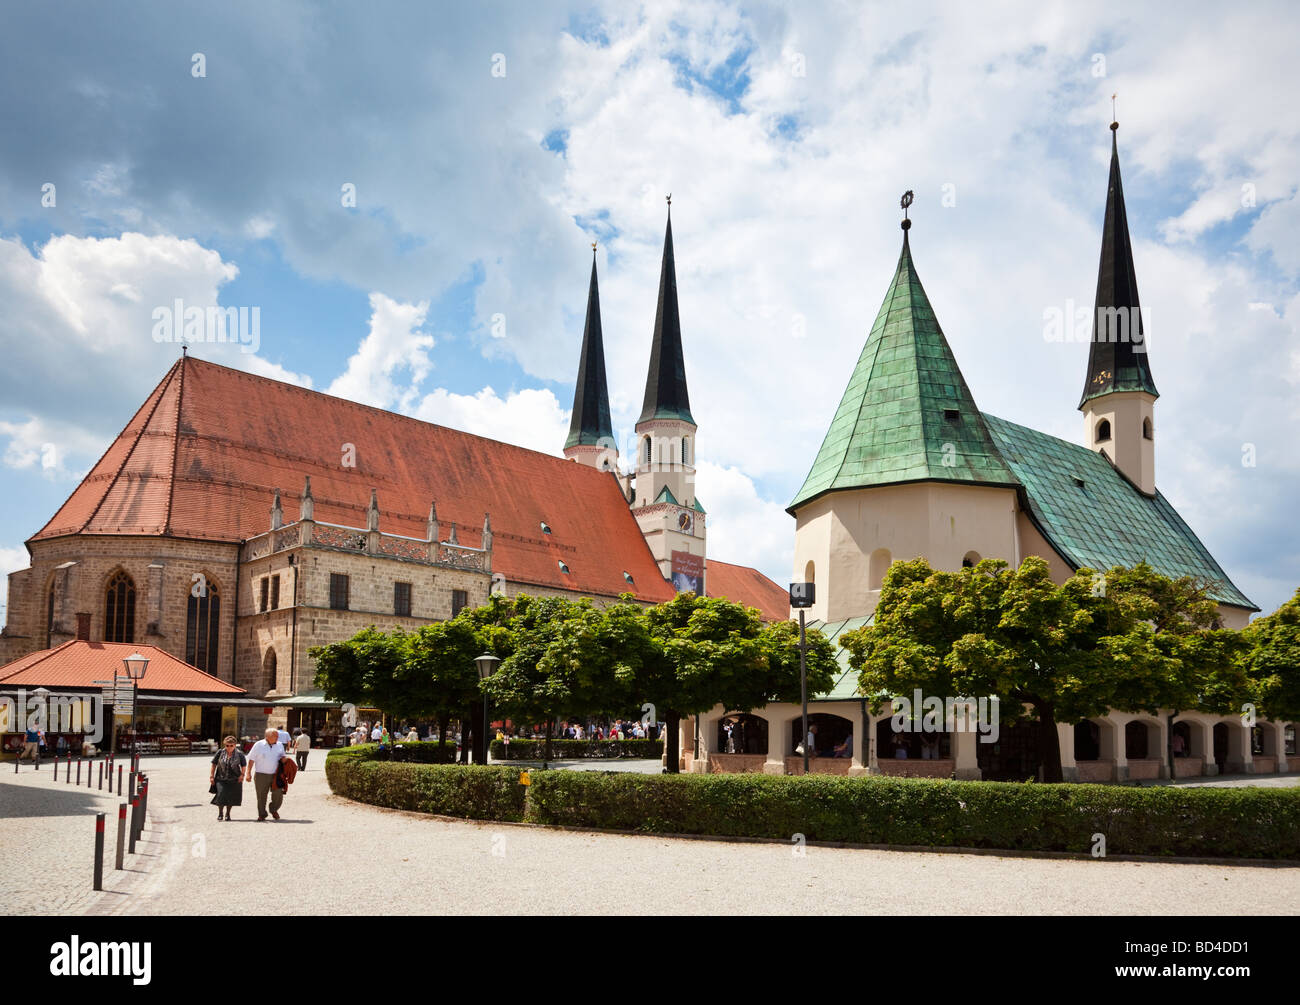 Altotting, Bavaria, Germany - Collegiate Parish Church and Chapel of the Miraculous Image Stock Photo